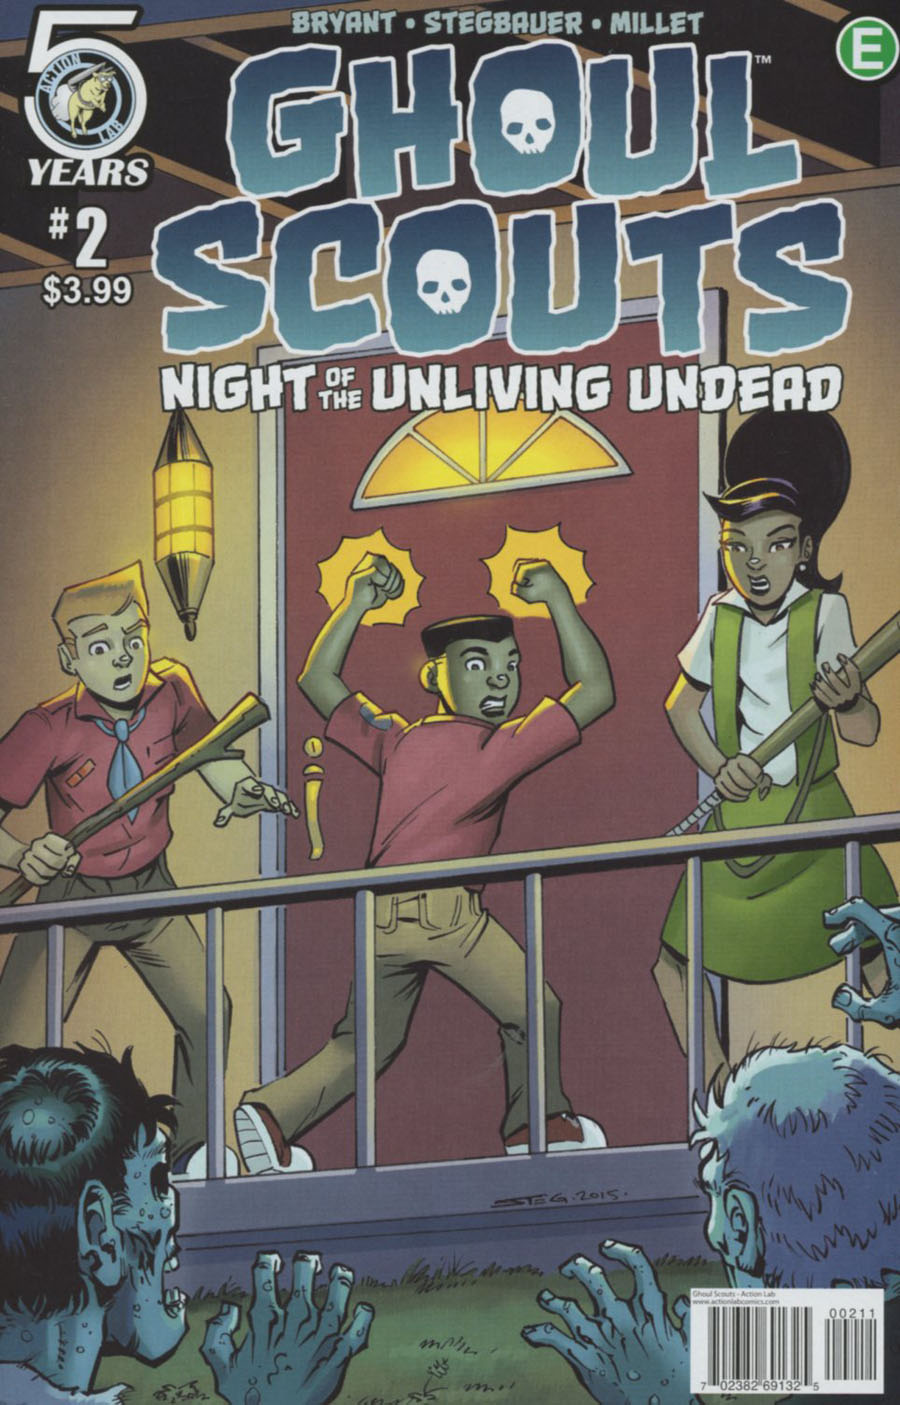 Ghoul Scouts Night Of The Unliving Undead #2 Cover A Regular Mark Stegbauer Cover